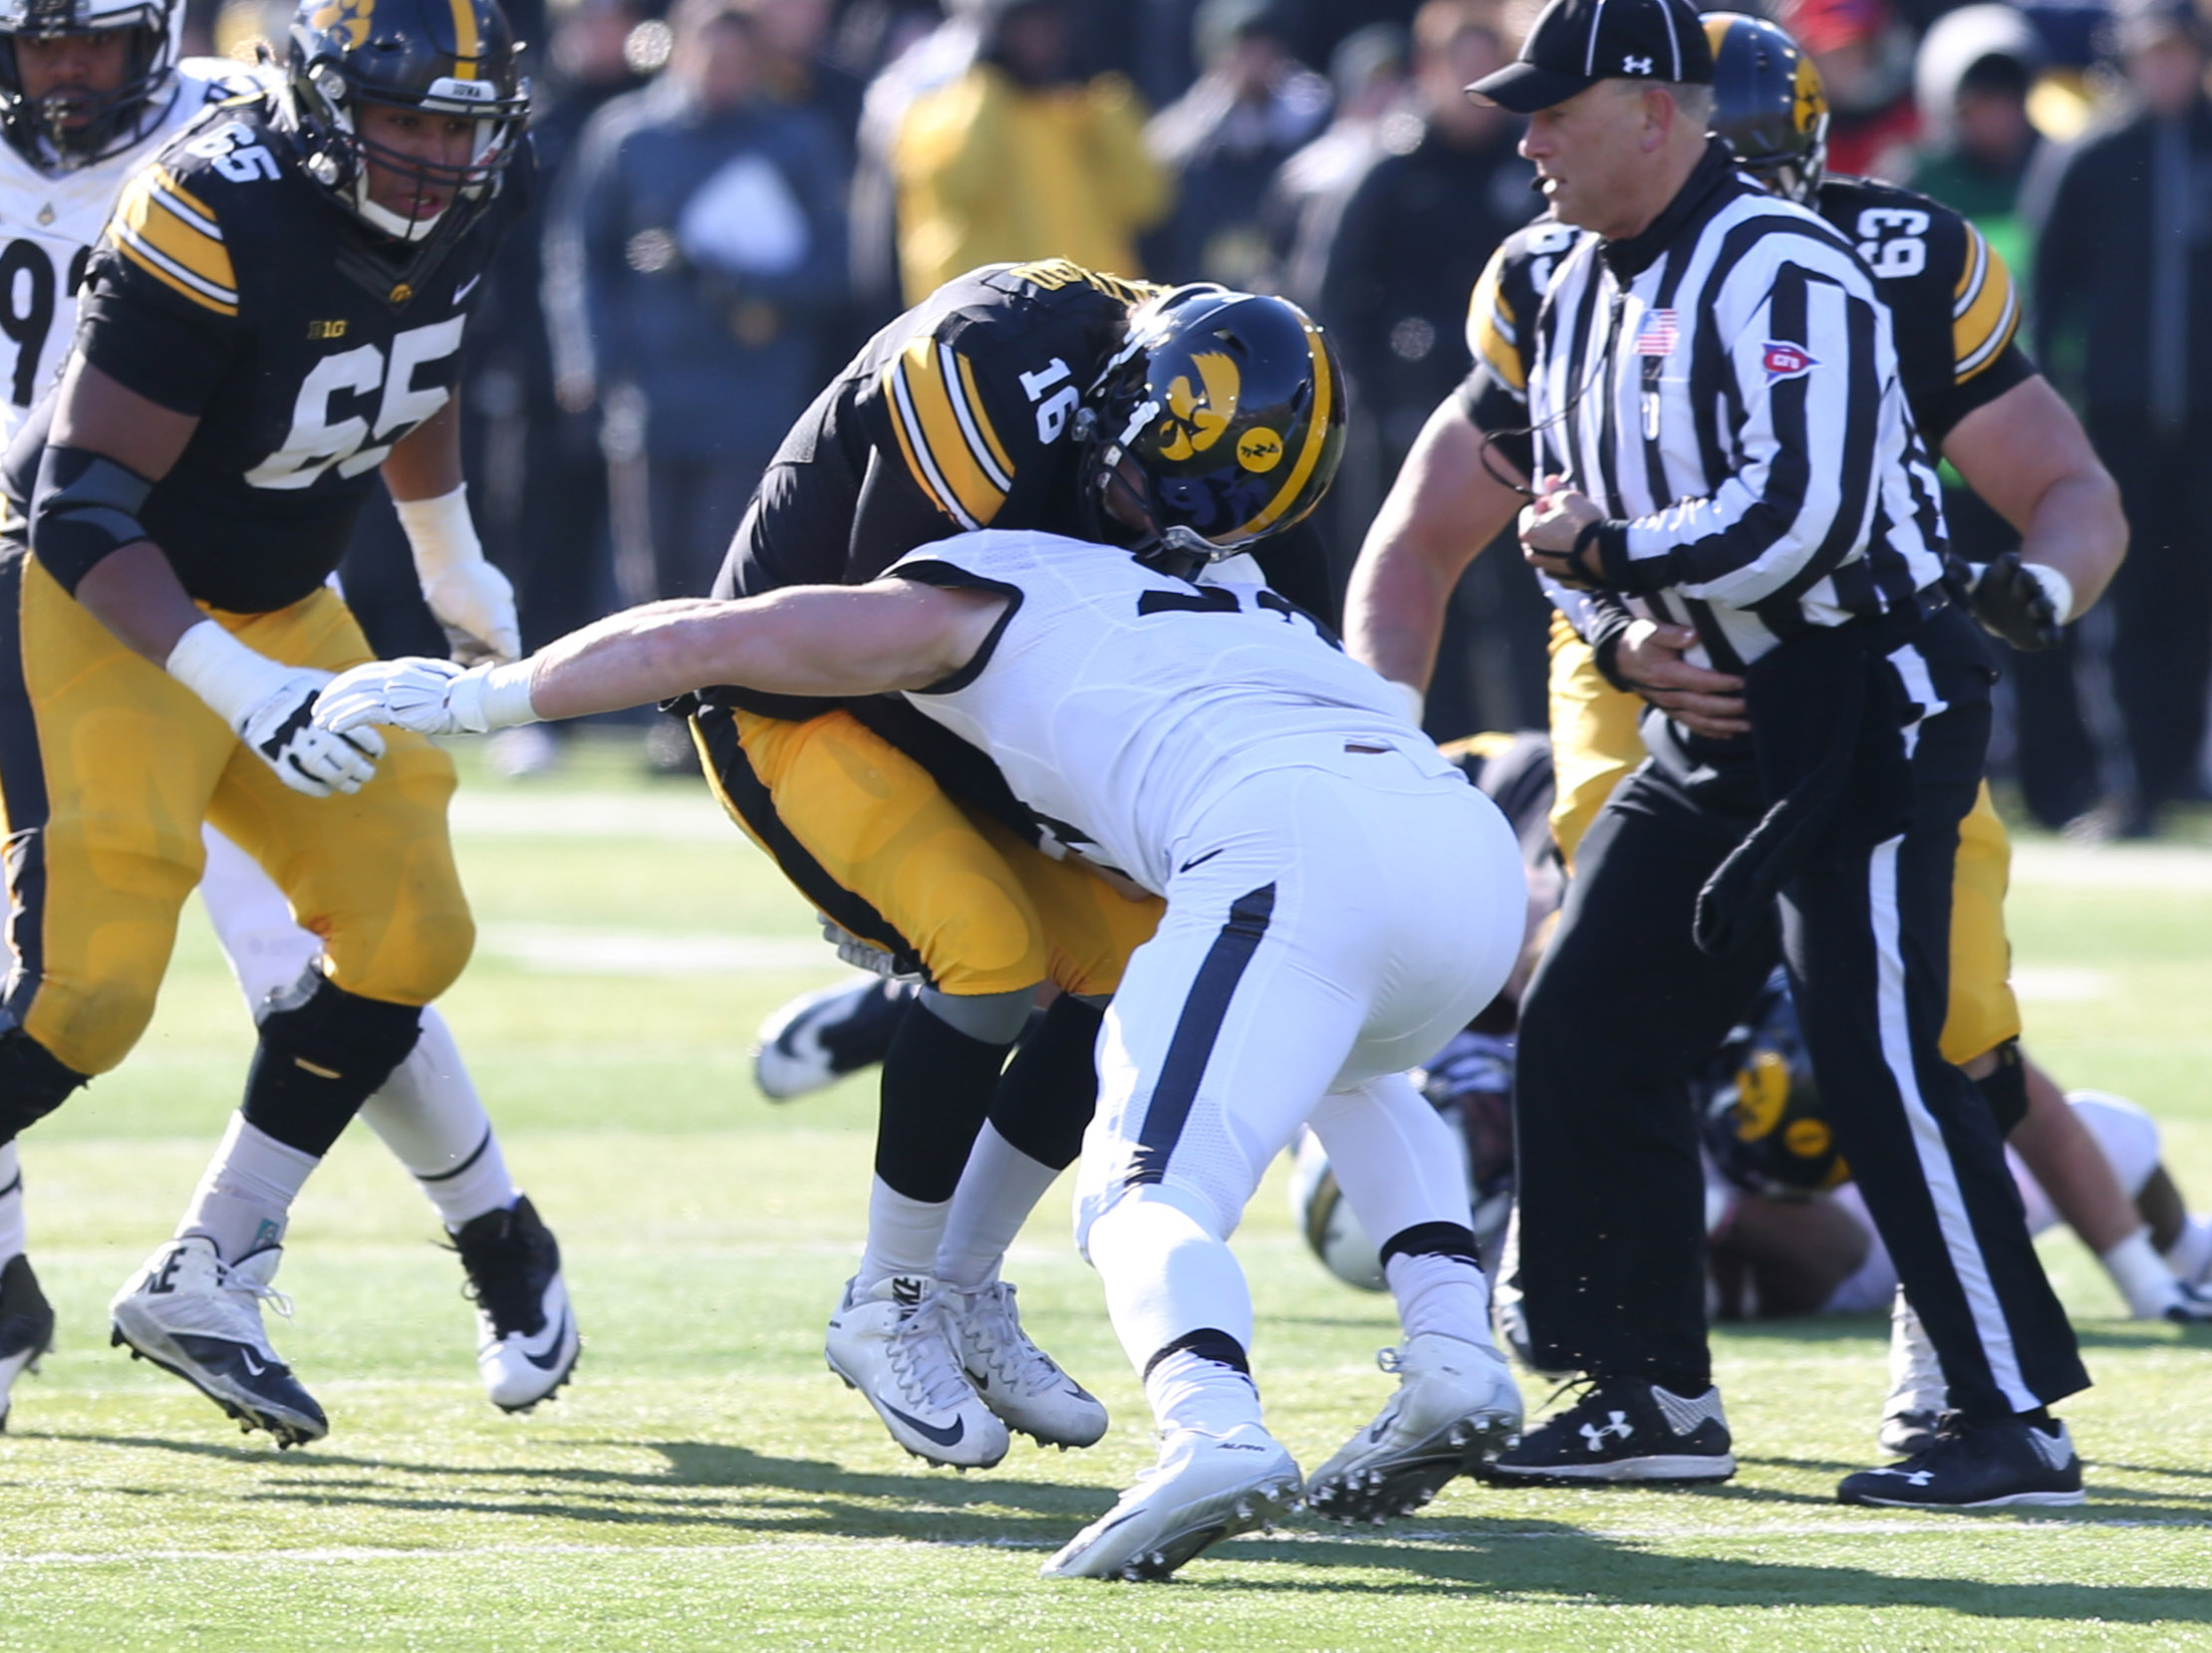 Beathard looks like he's in an awful lot of pain here.